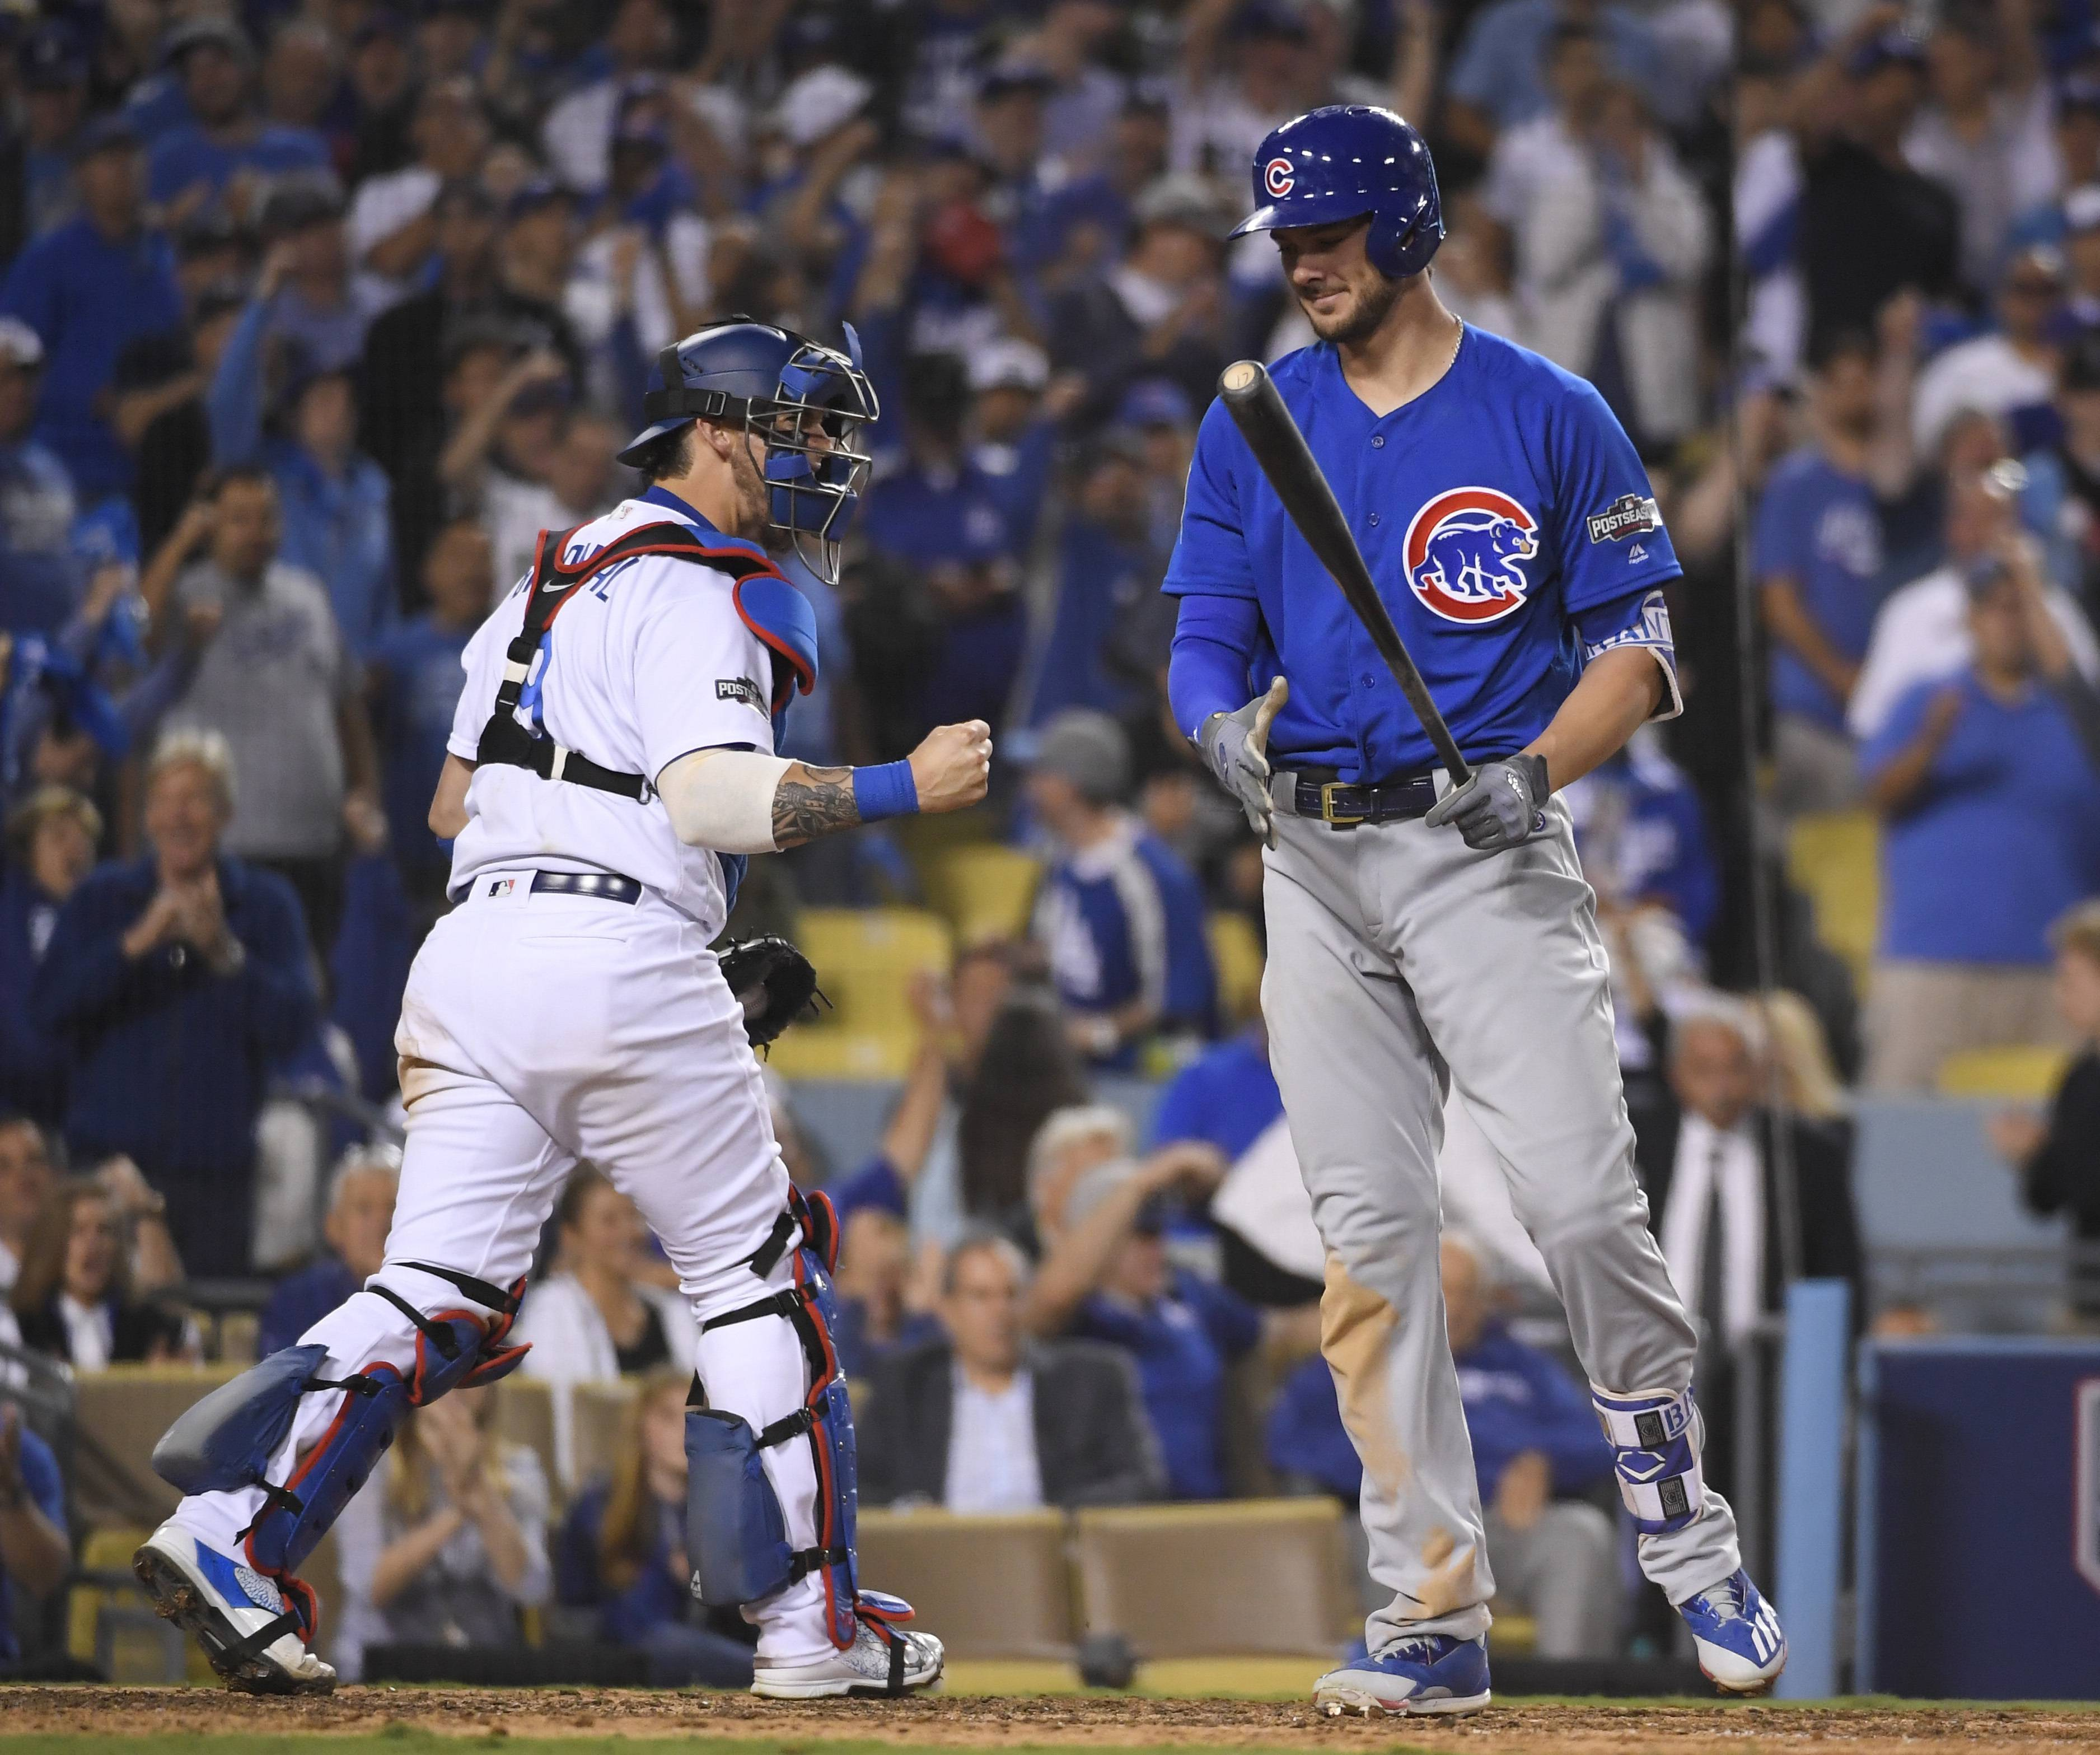 Los Angeles Dodgers catcher Yasmani Grandal reacts after Chicago Cubs' Kris Bryant strikes out during the eighth inning of Game 3 of the National League baseball championship series Tuesday, Oct. 18, 2016, in Los Angeles.